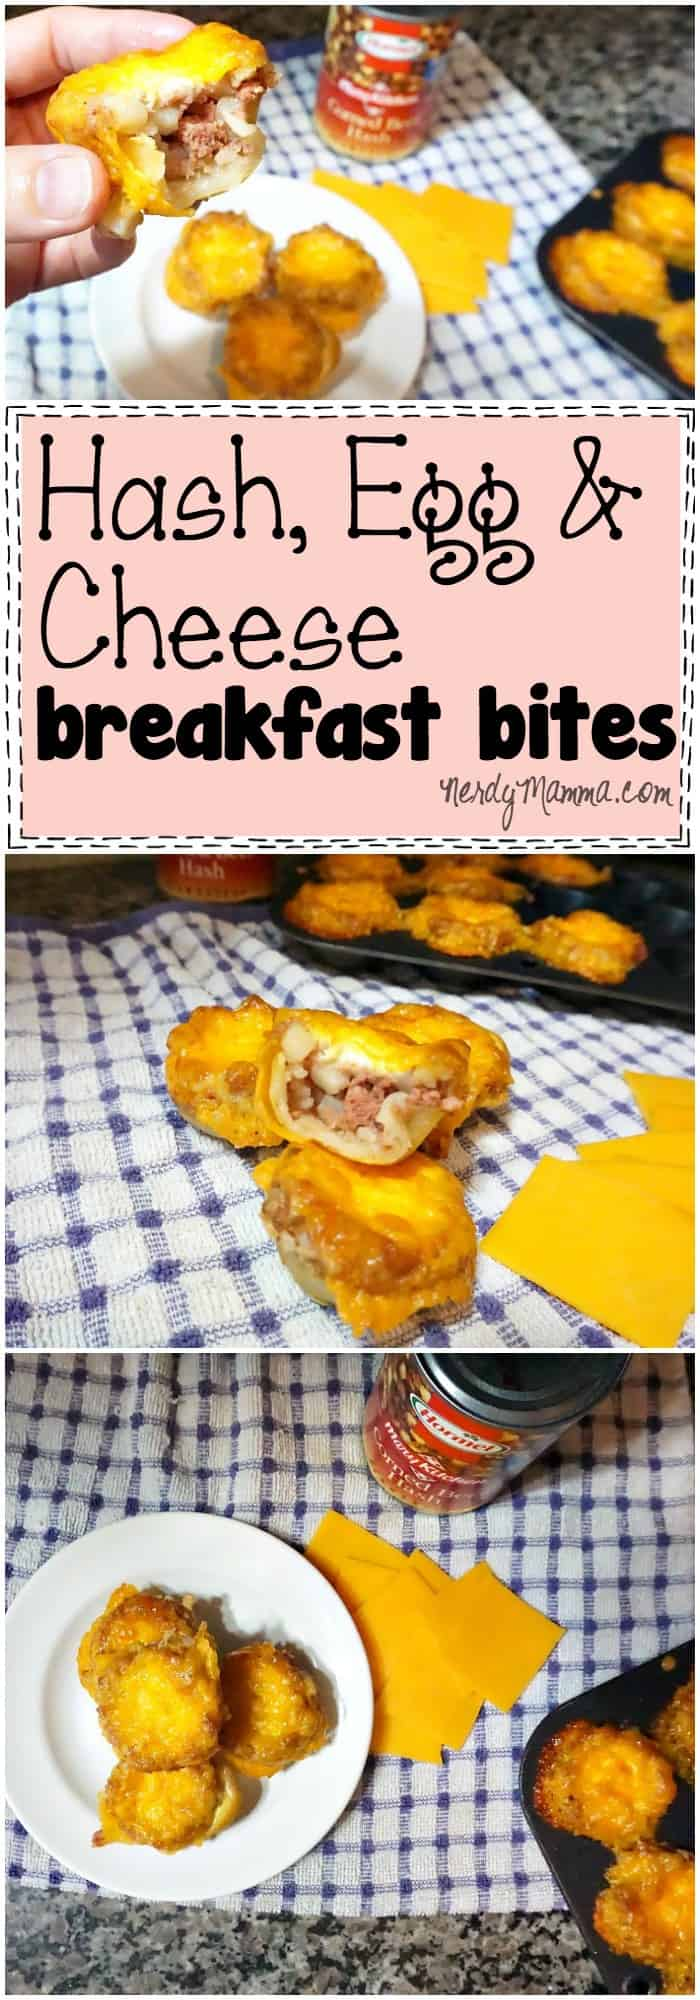 These Hash, Egg and Cheese Breakfast Bites look so amazing. It's an easy recipe I'd love to try!